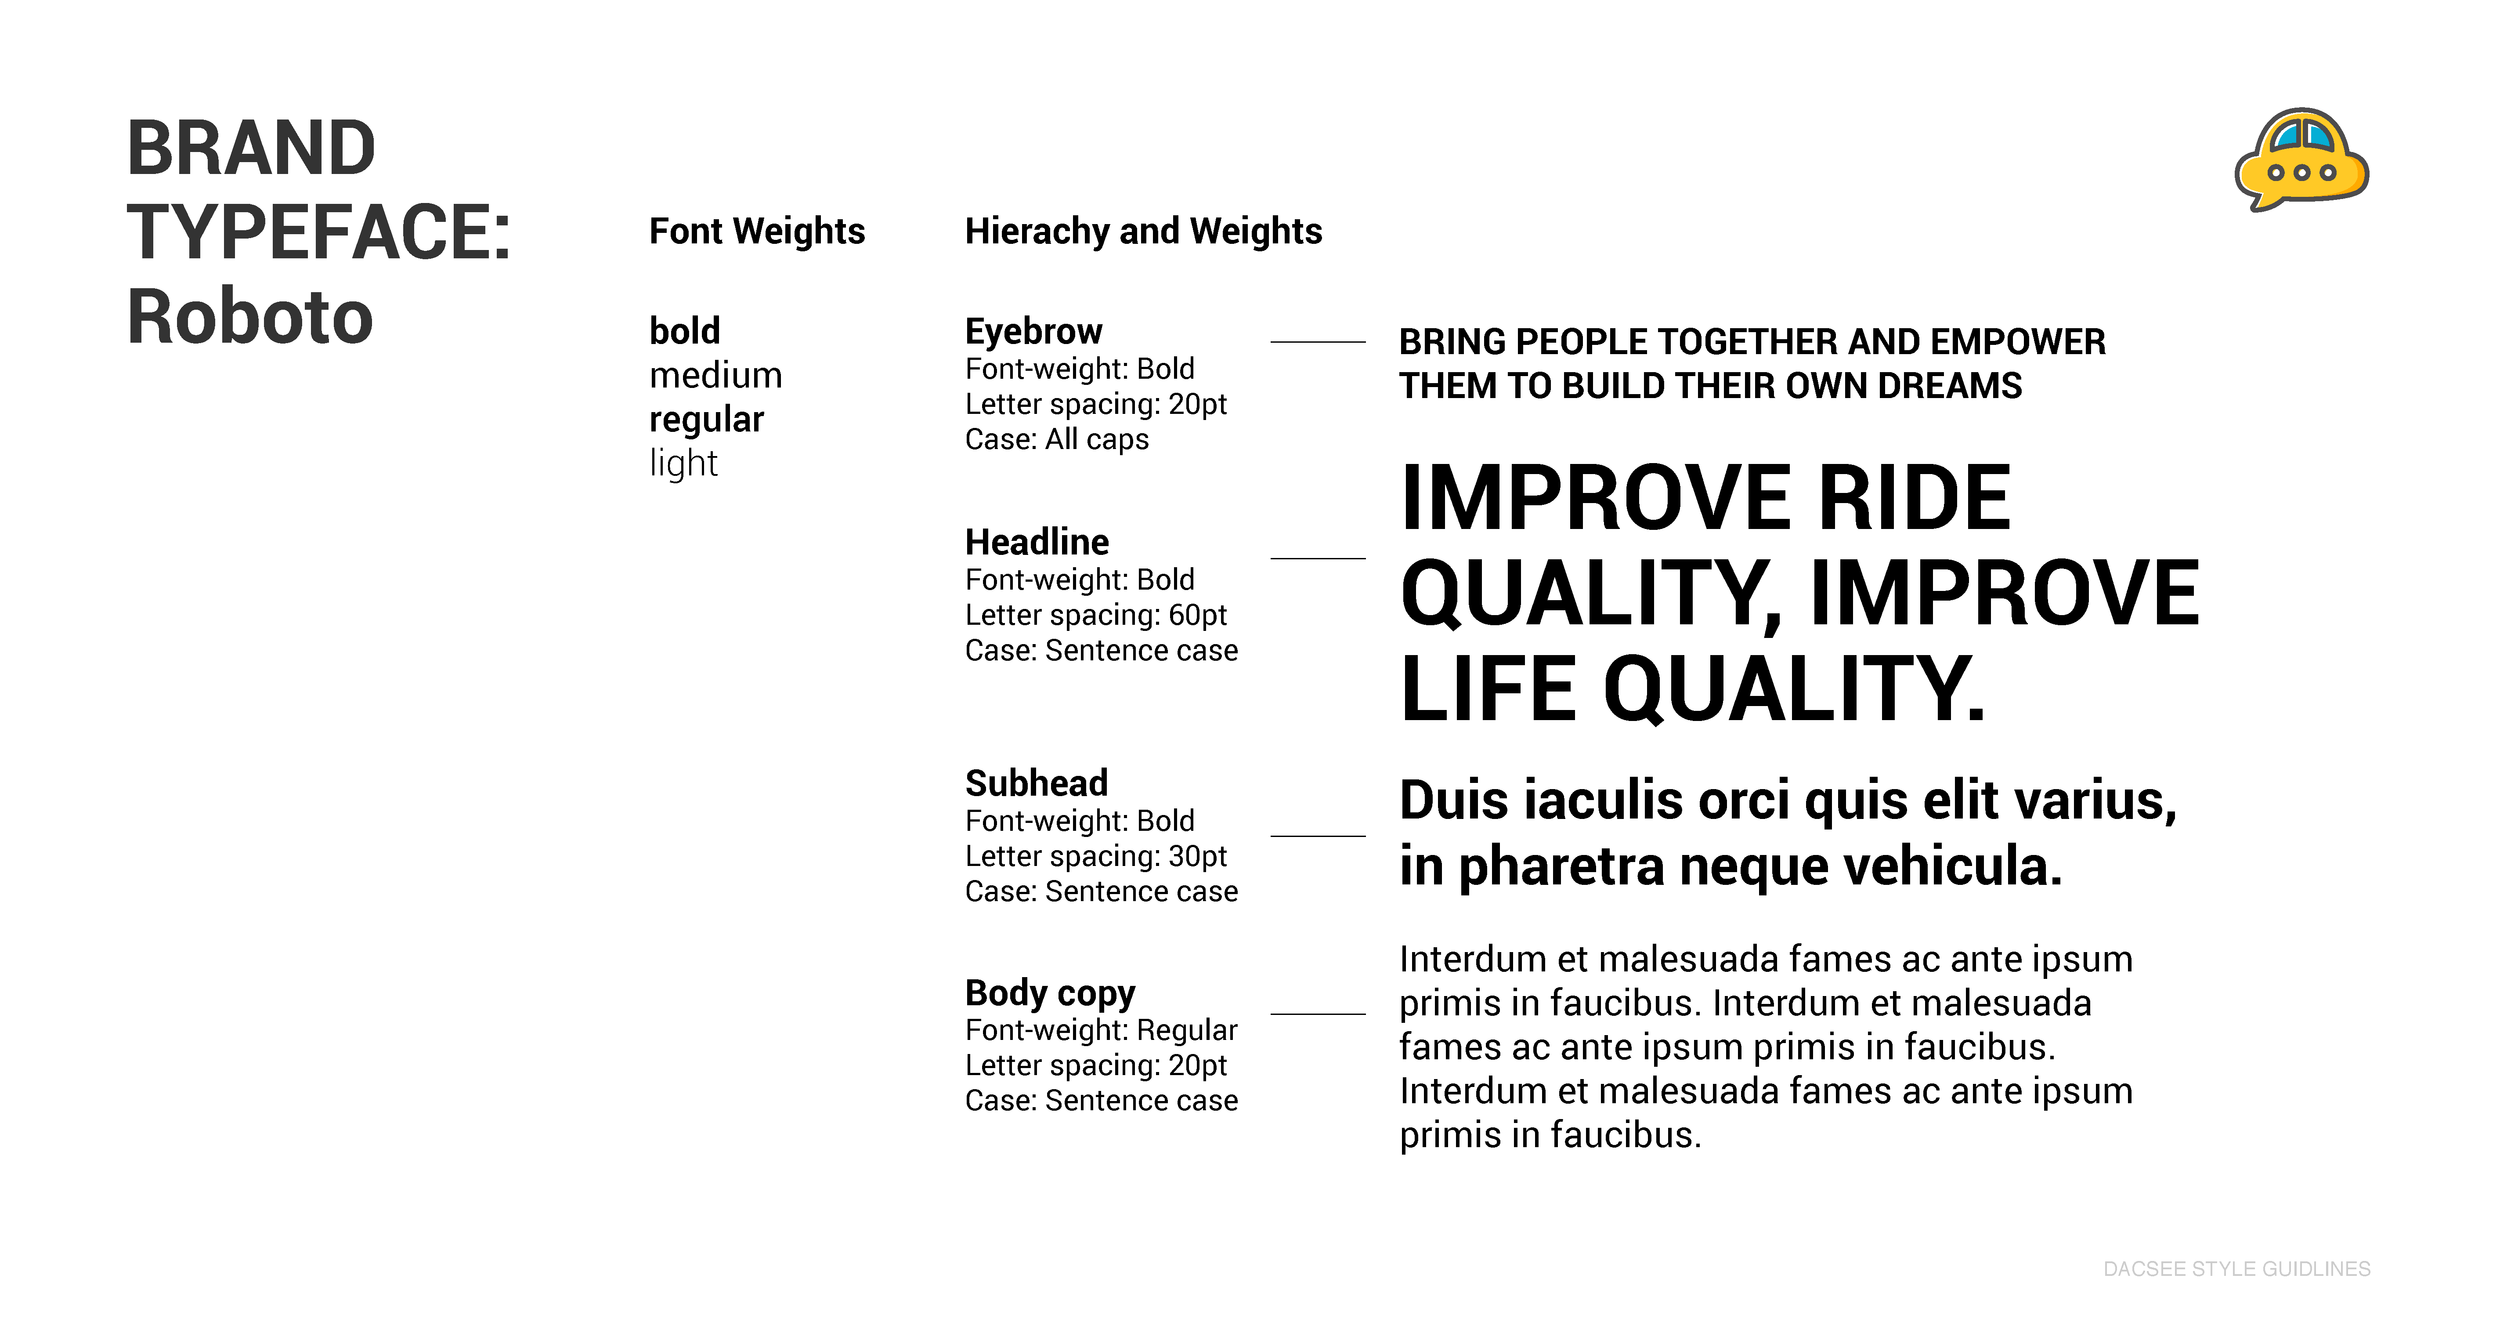 DACSEE_Brand_Guidelines_Page_11.png